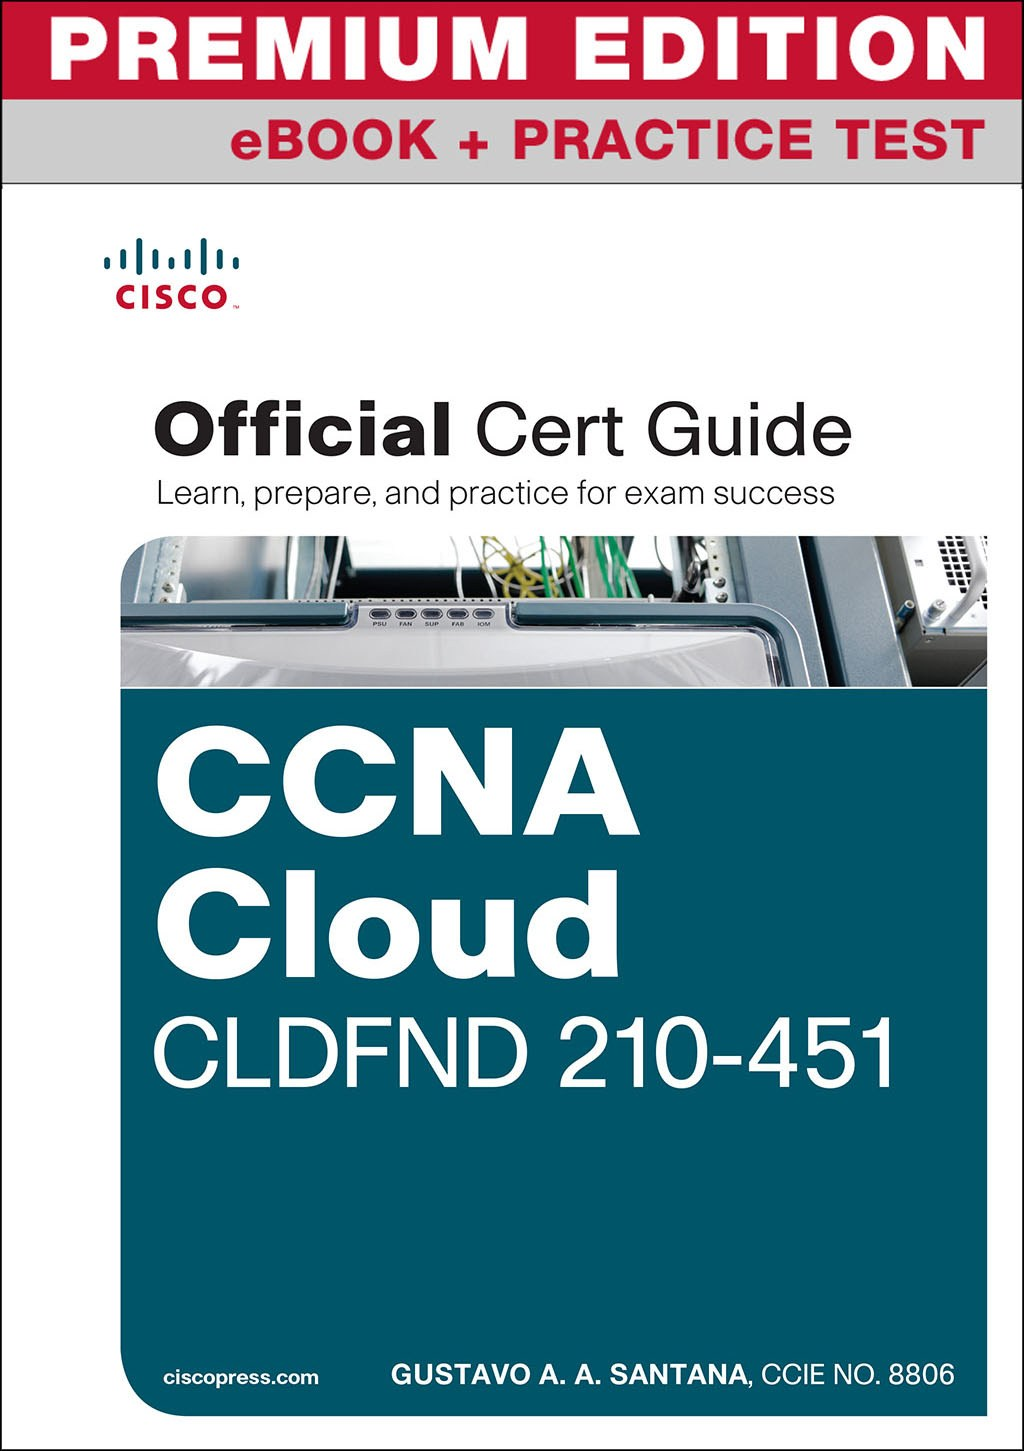 CCNA Cloud CLDFND 210-451 Official Cert Guide Premium Edition and Practice Tests